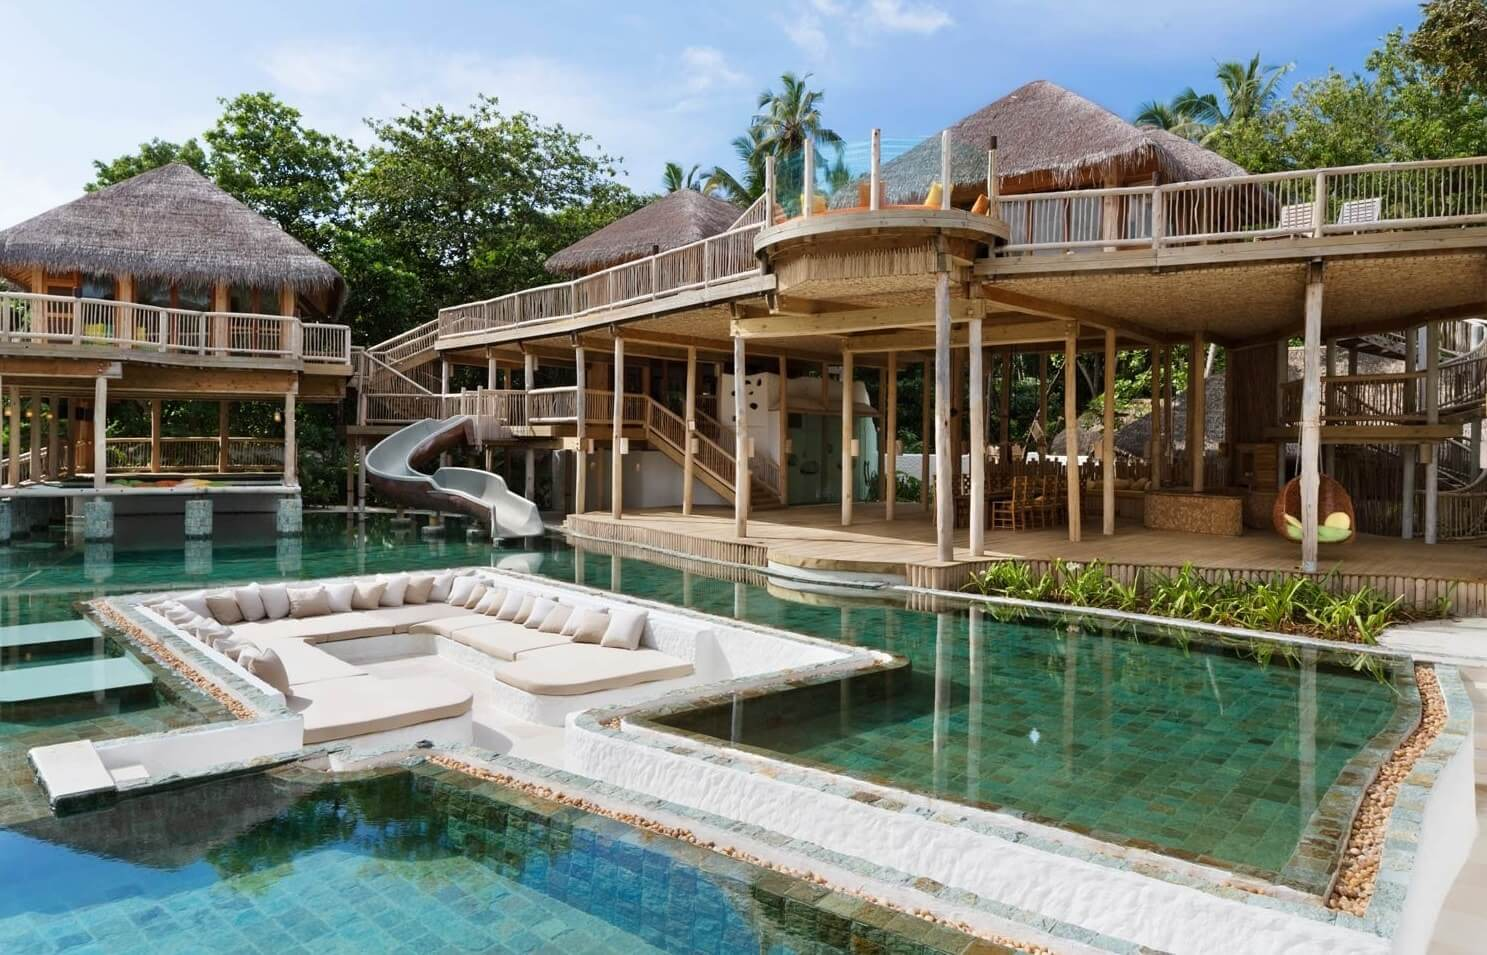 3 Maldives Resorts With Water Slide In The Villa